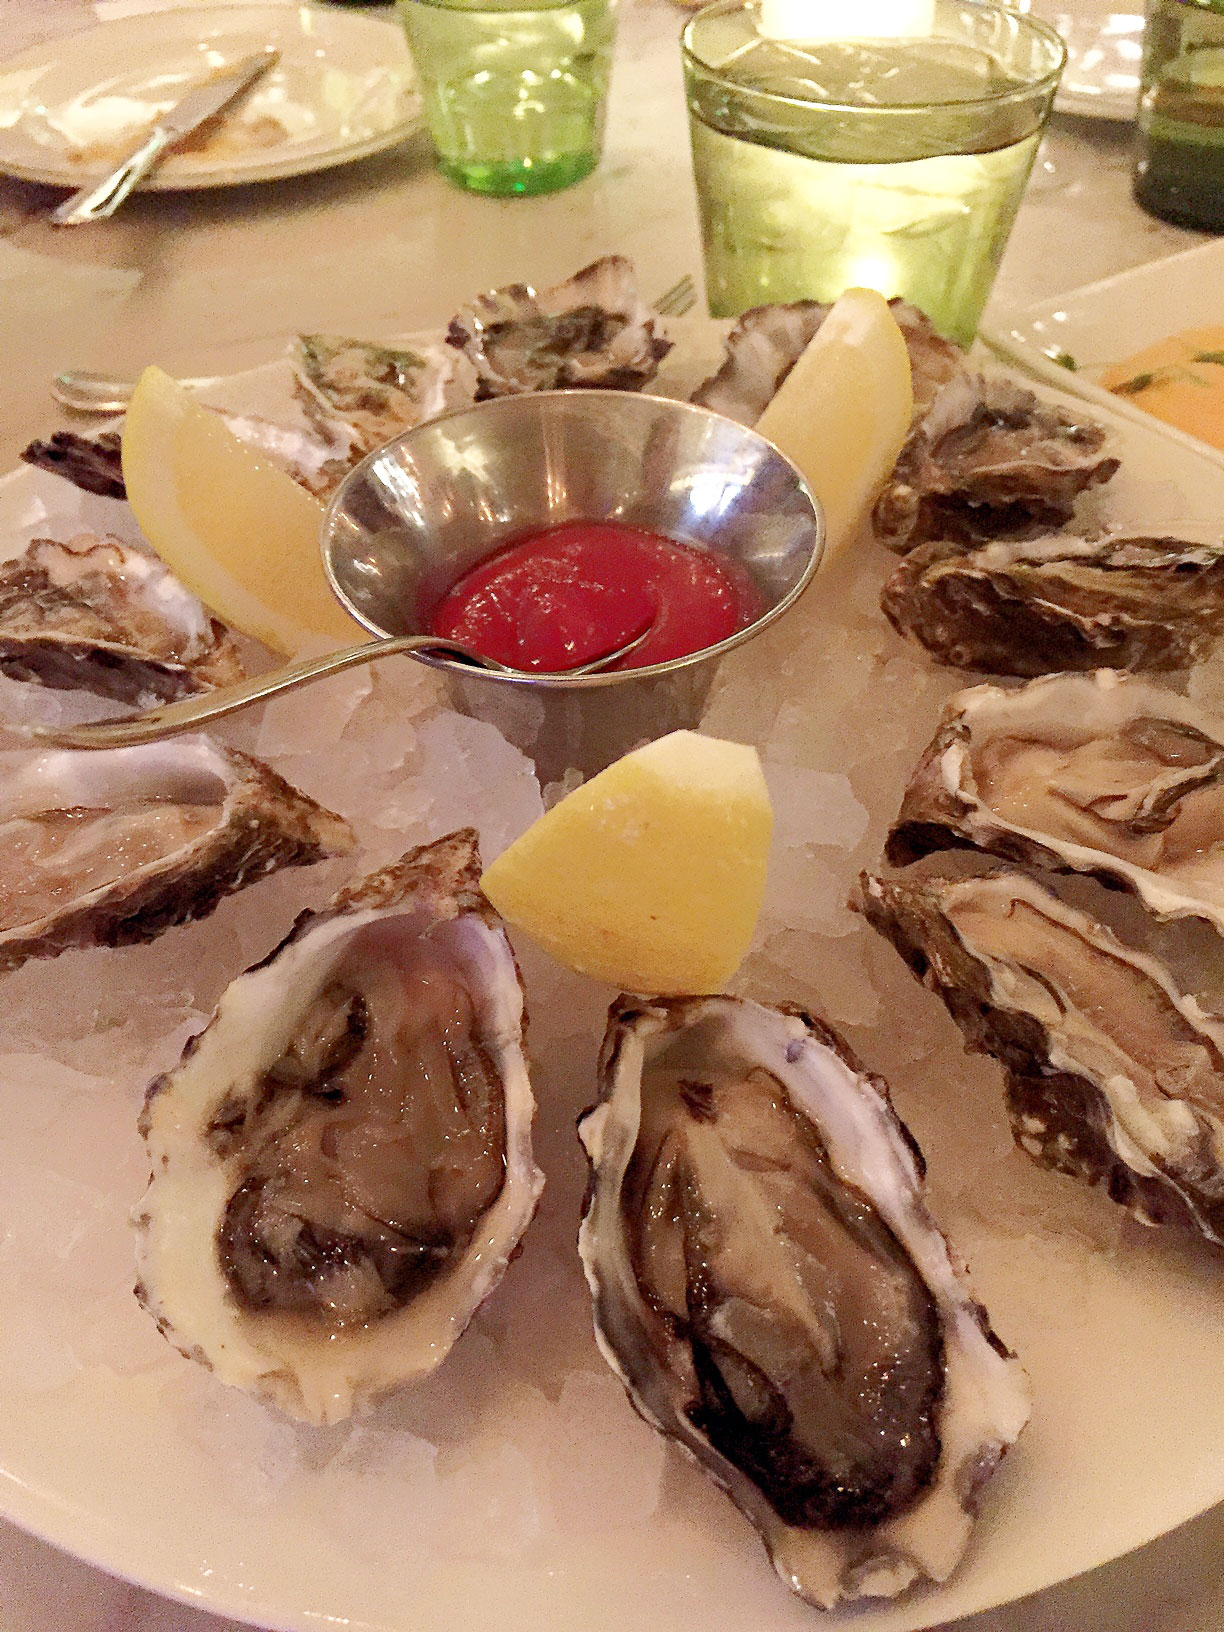 Oysters are $1 during Oyster Hour at db Brasserie. Photo by Kristine McKenzie